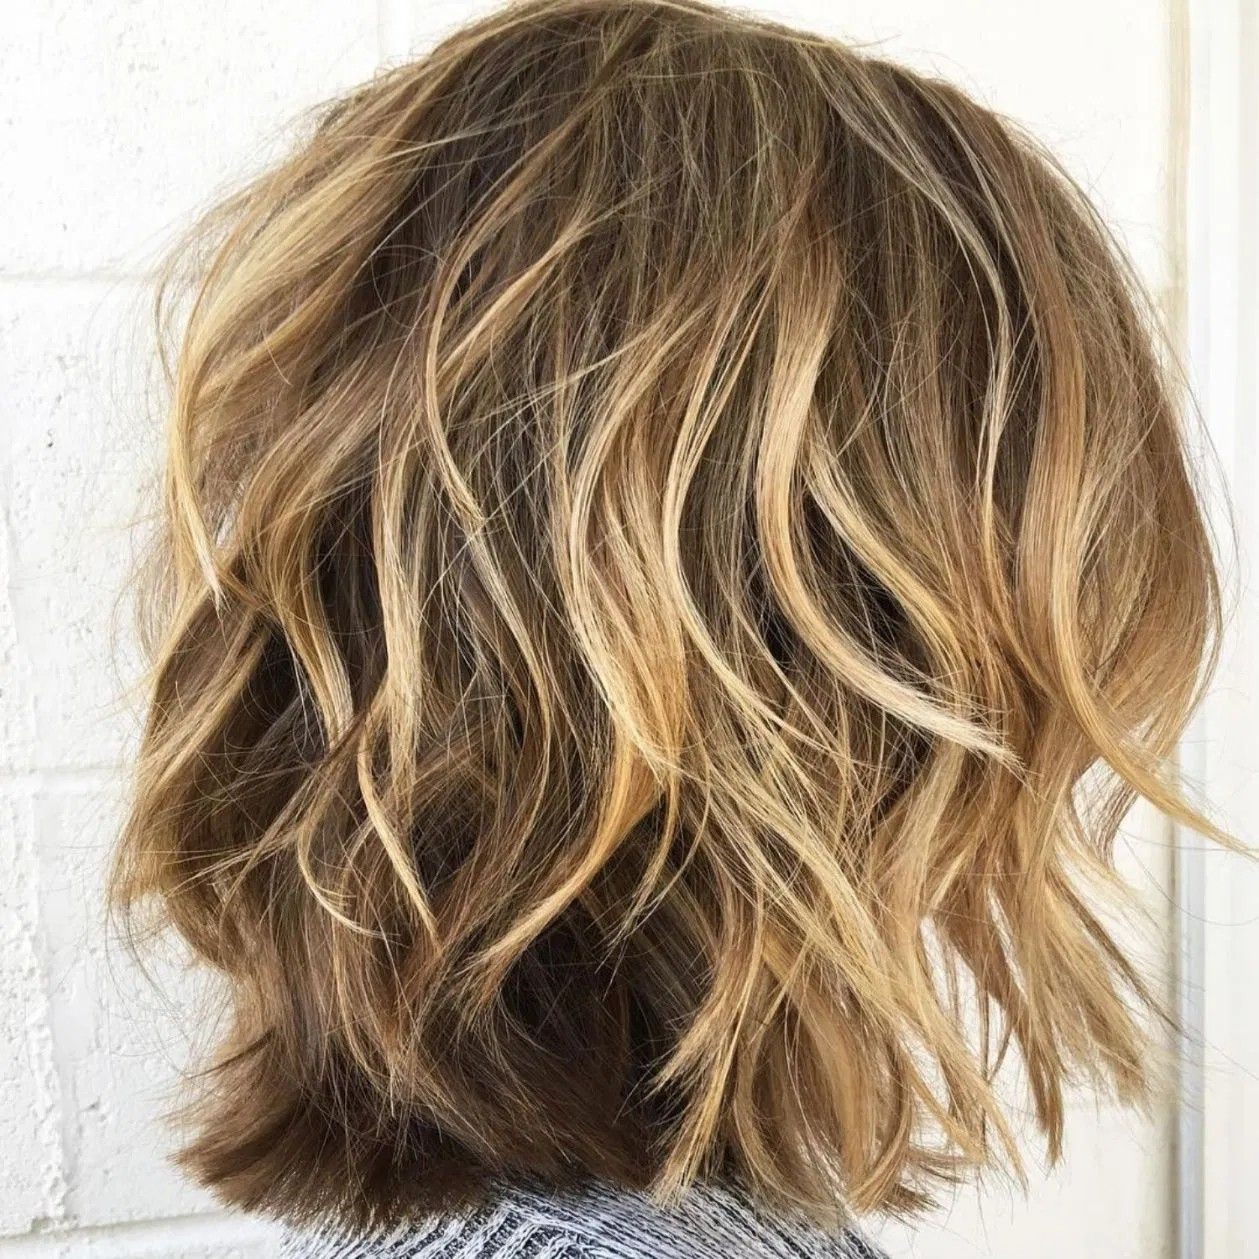 Pin By Becky Russell On Hairrrr In 2020 Thick Hair Styles Haircuts For Wavy Hair Haircut For Thick Hair